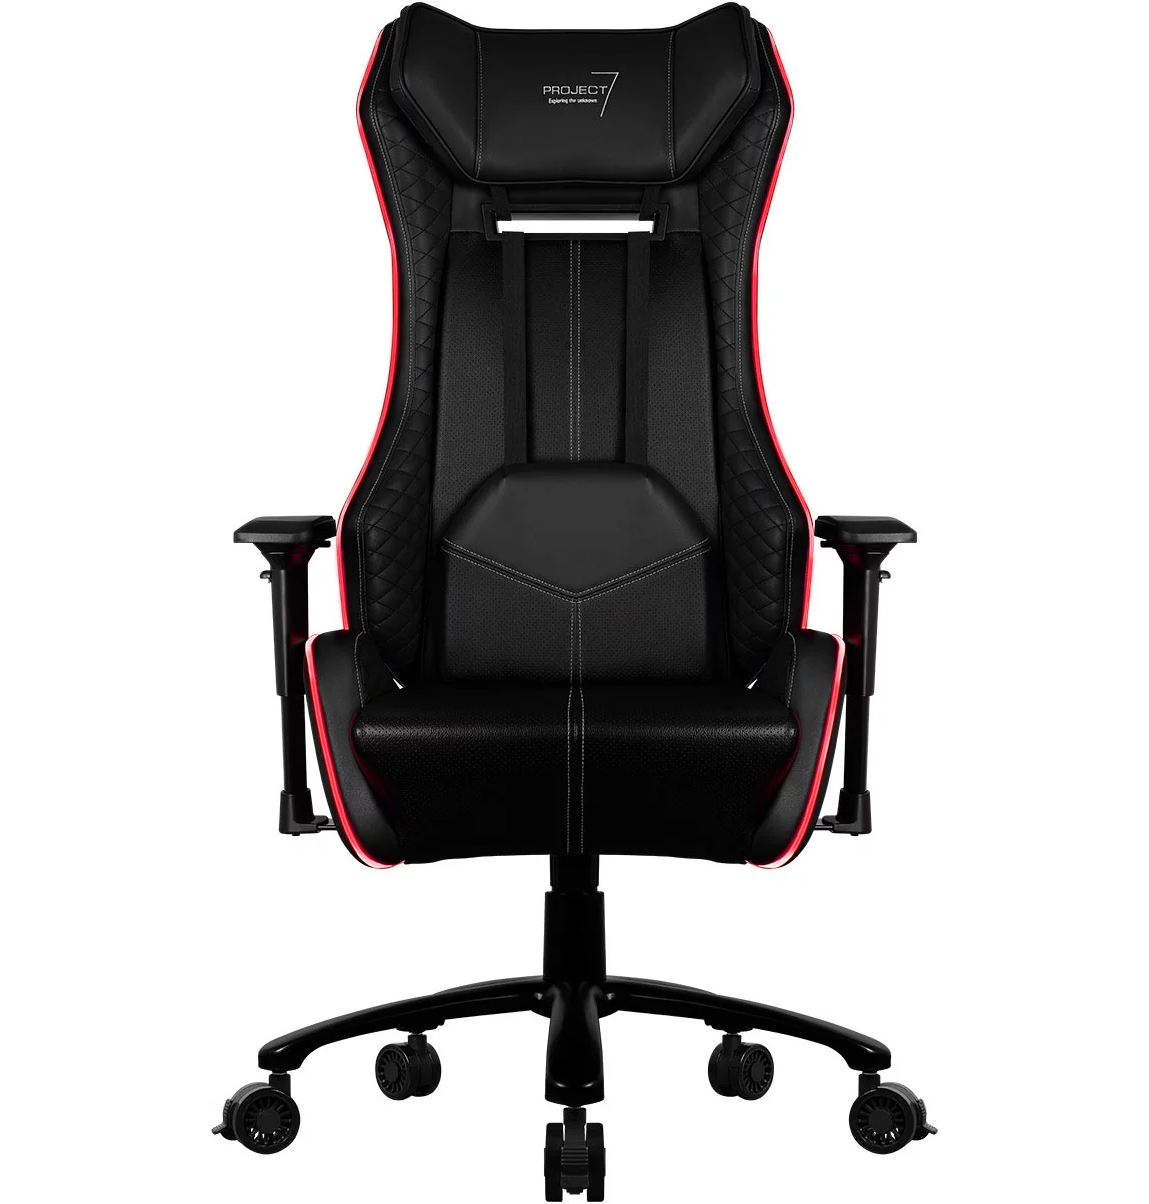 Aerocool Project 7 RGB Gaming Chair